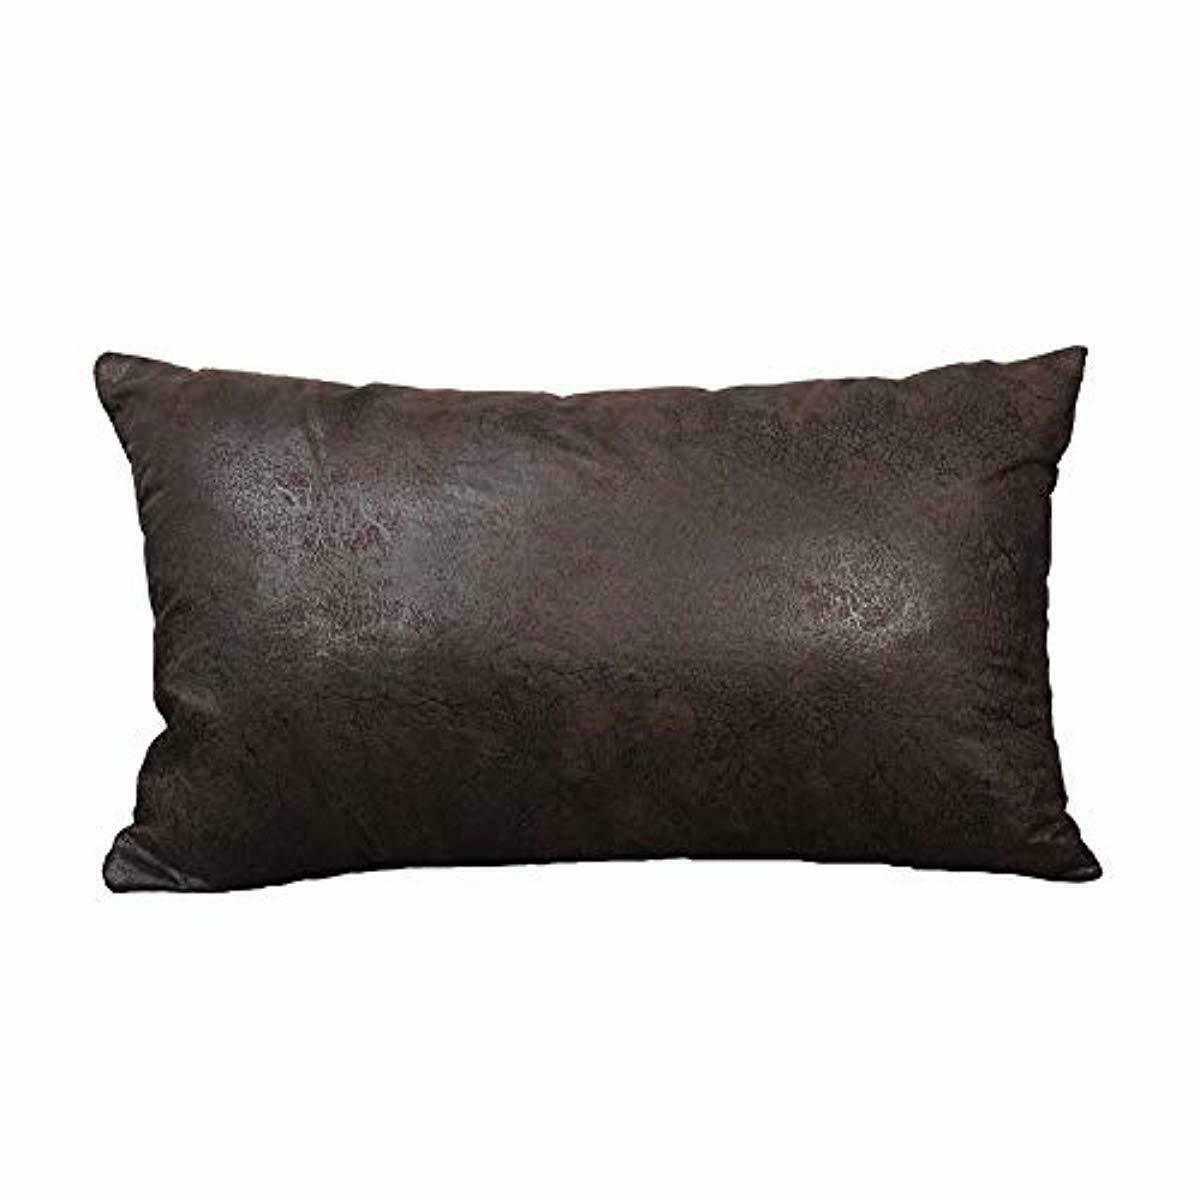 Soft Faux Leather Pillow Cover Decorative Throw Lumbar Case Cushion For Couch Ebay